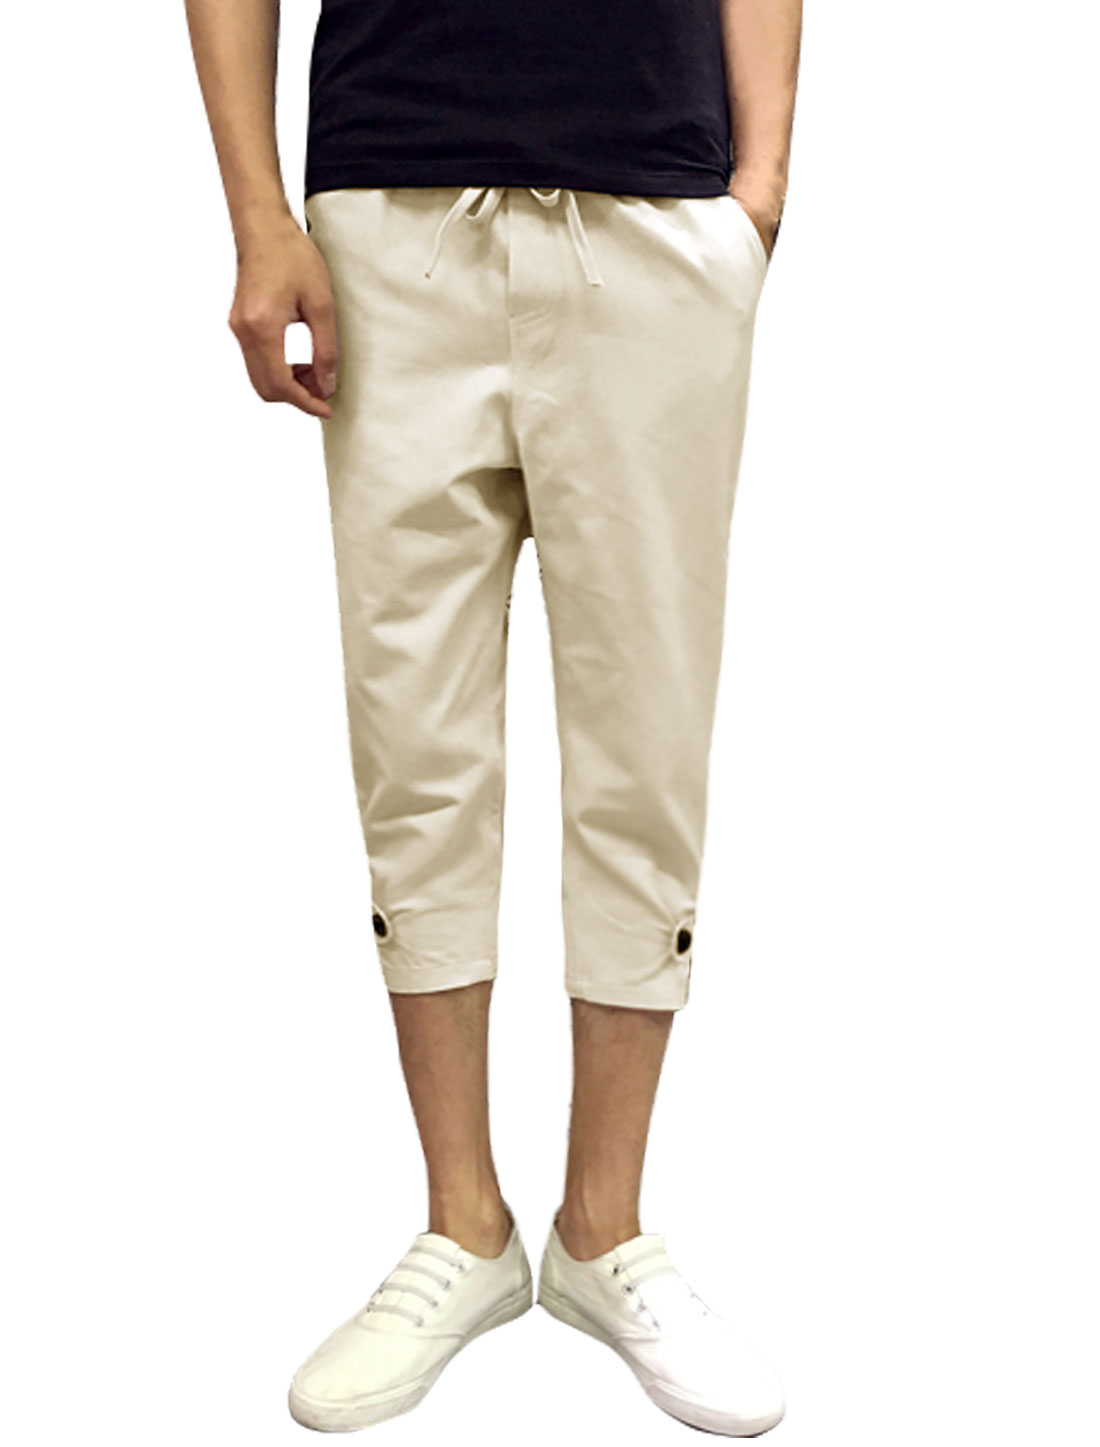 Men Drawstring Elastic Waist Pockets Capri Pants Beige W30